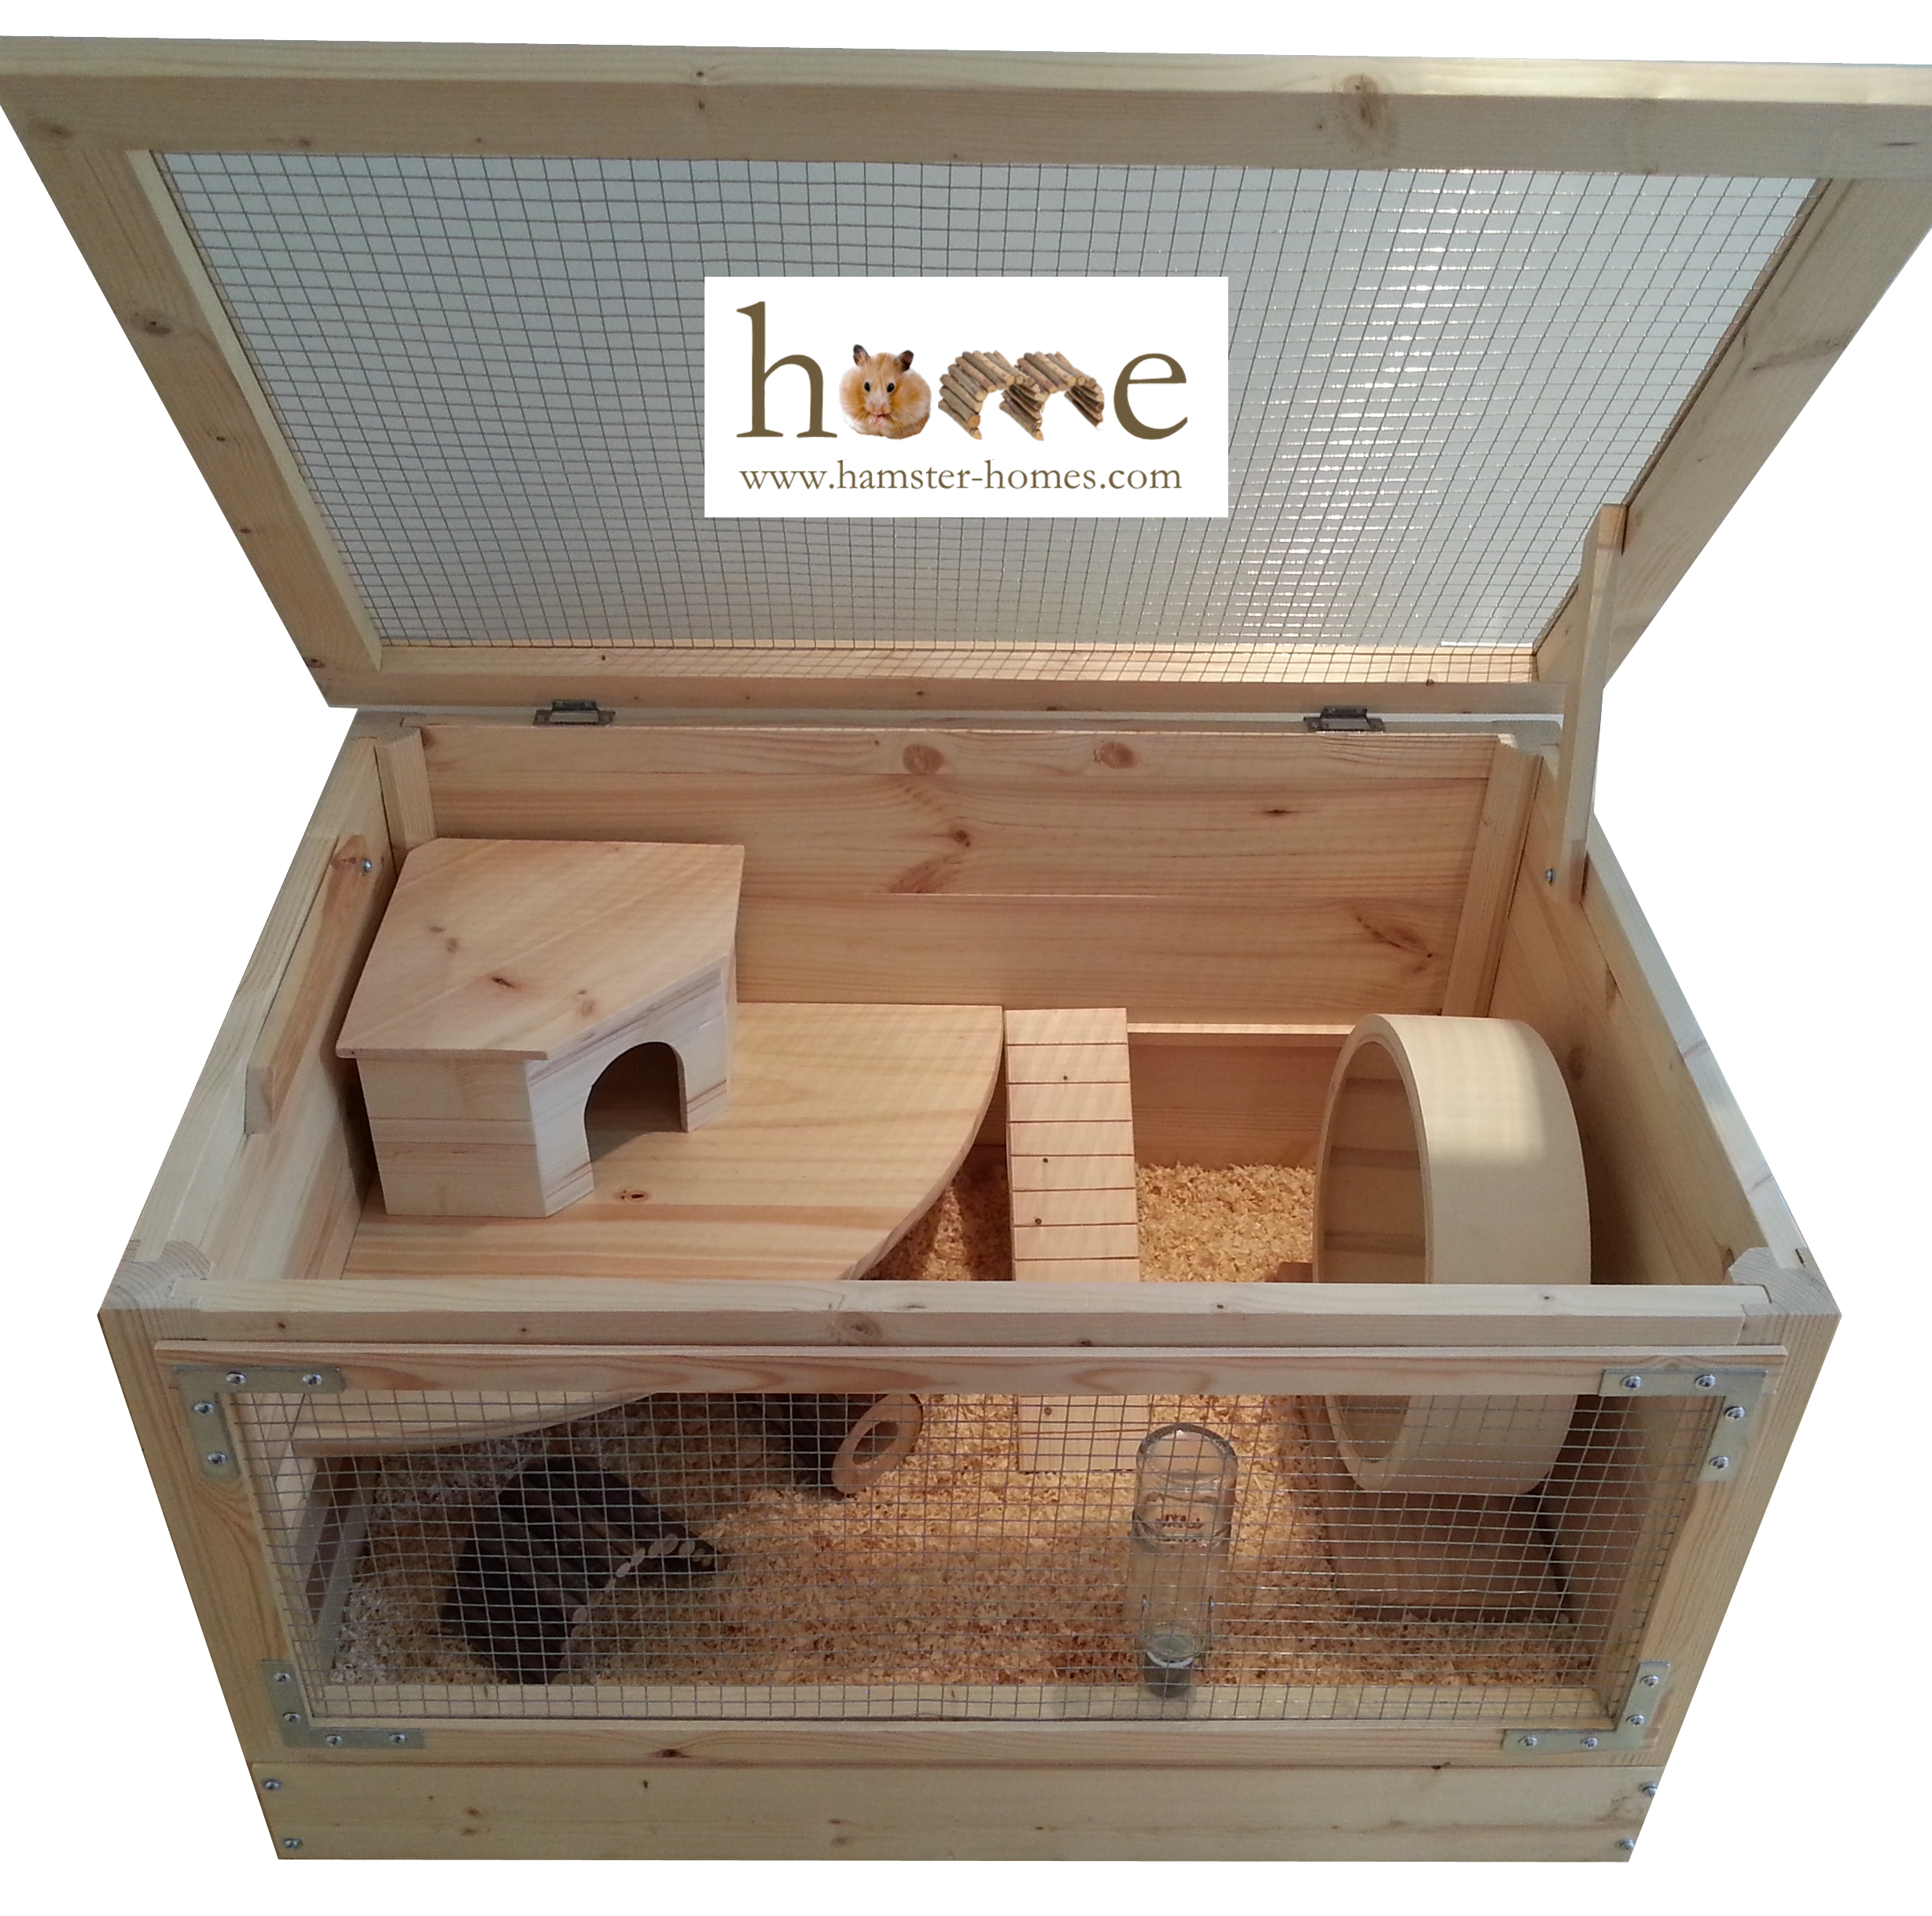 Large wooden hamster cage 80 cm x 50 cm high quality for How to build a hamster cage